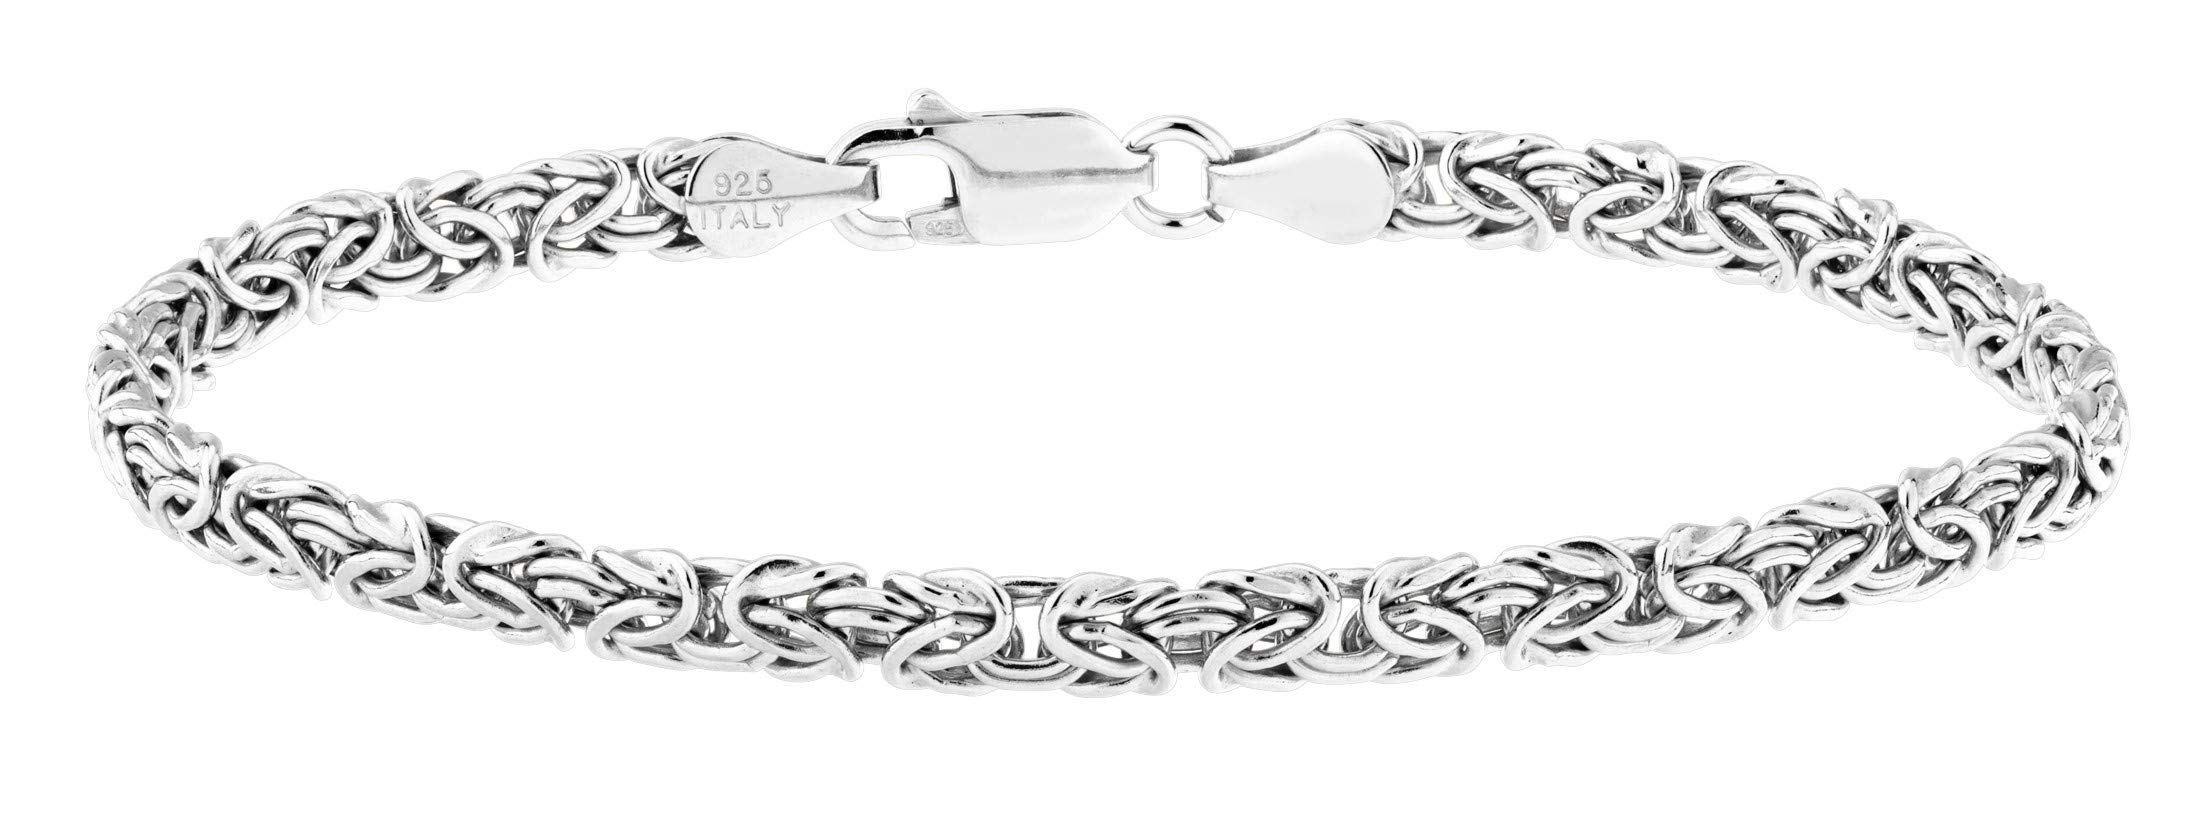 MiaBella 925 Sterling Silver Byzantine Link Chain Ankle Bracelet for Women Teen Girls, 6.5'', 7'', 7.5'', 8'' 9'', 10'' White or Yellow 925 Italy (10, Sterling-Silver)